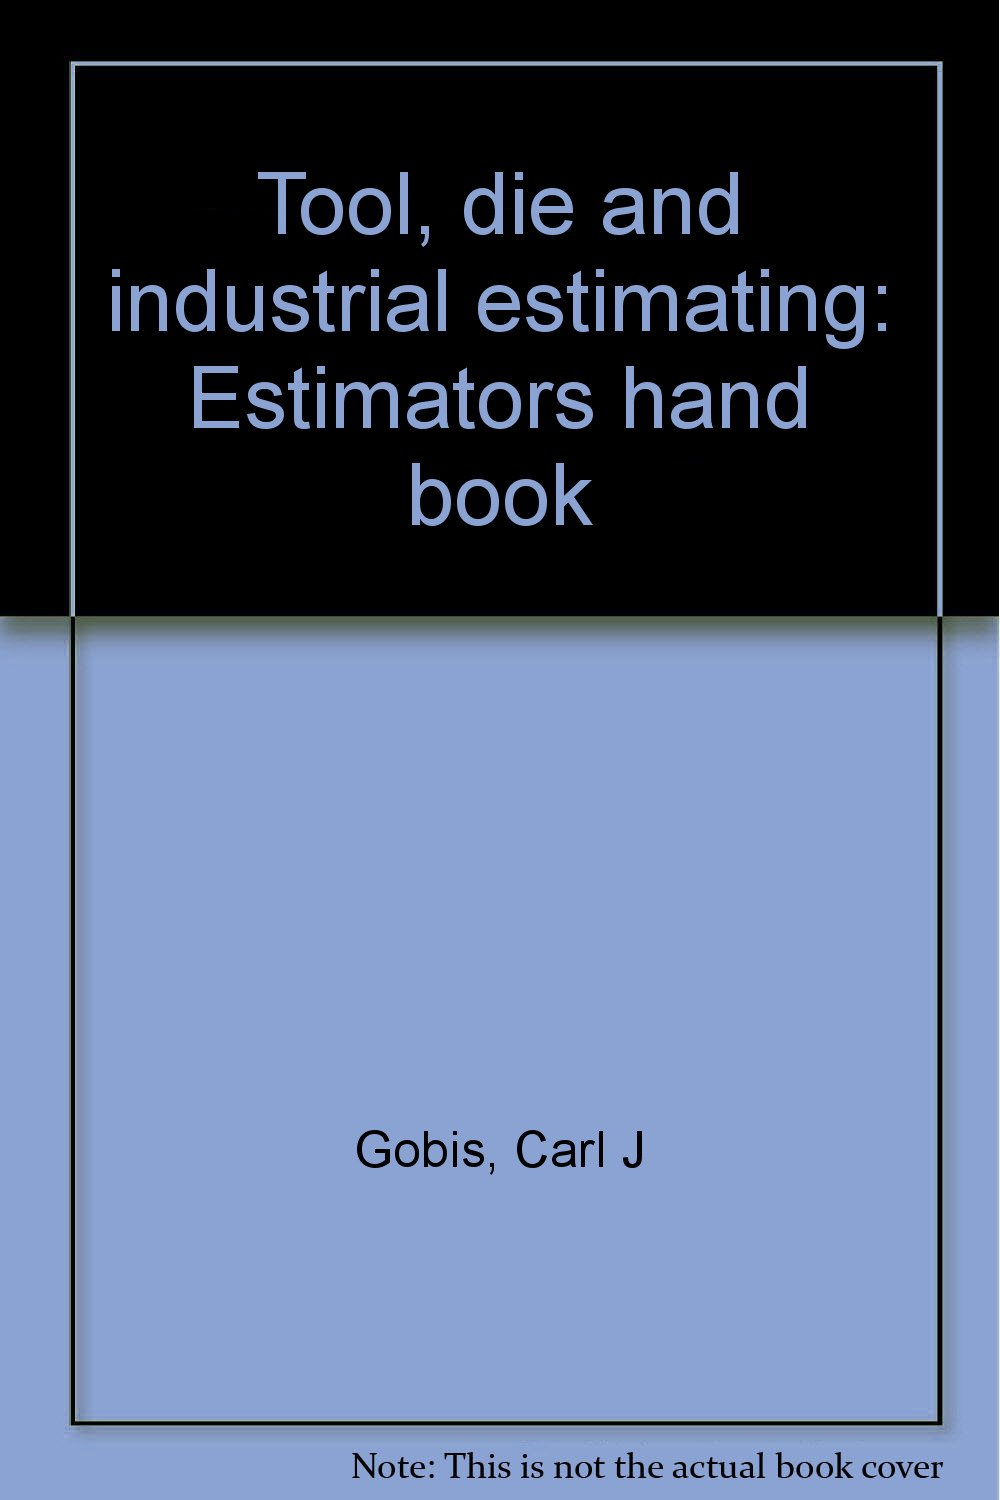 Tool, die and industrial estimating: Estimators hand book